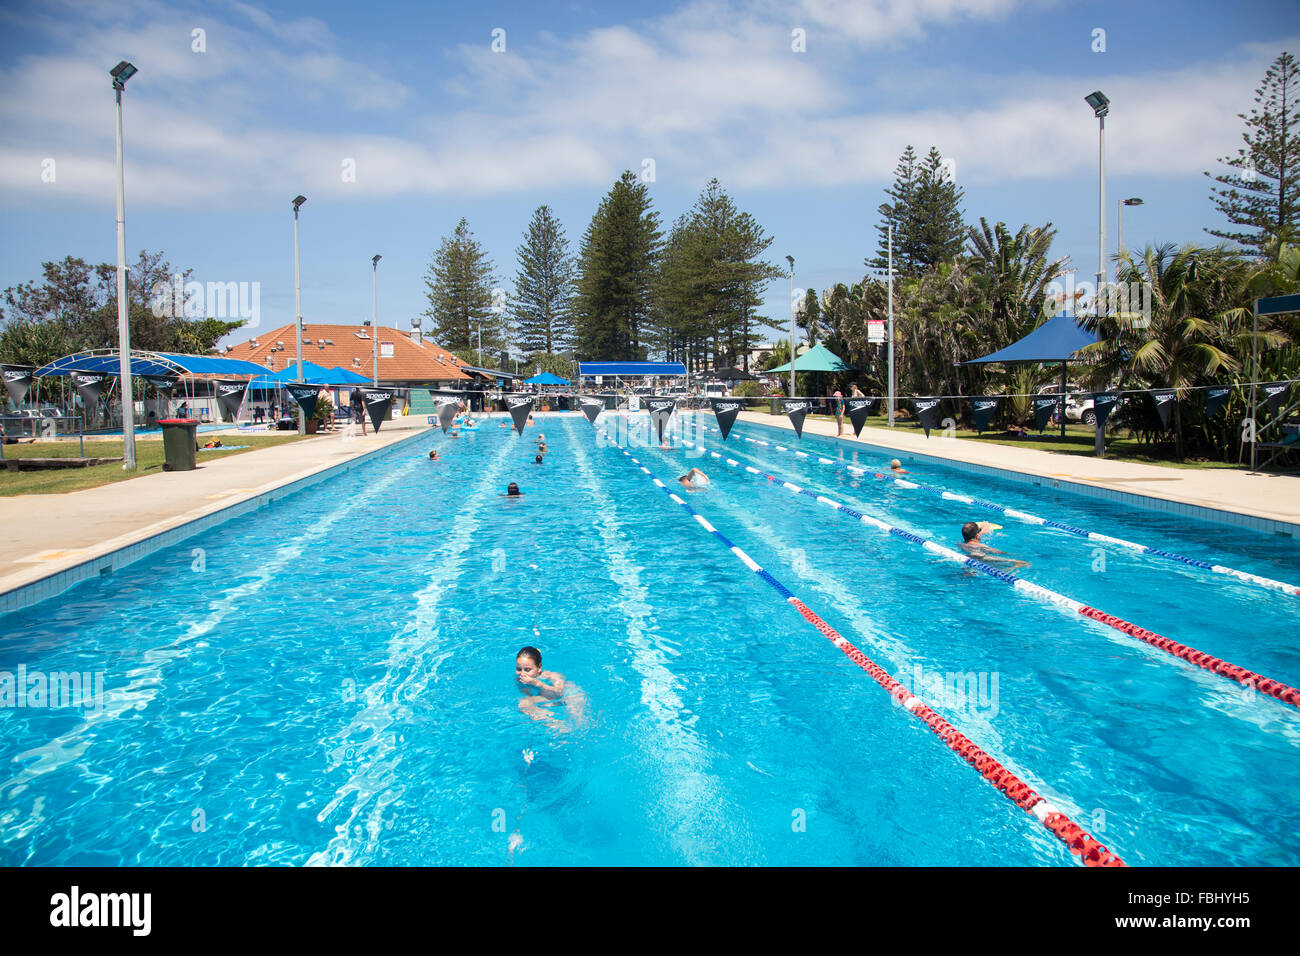 Byron bay public open air olympic size swimming pool near main stock photo royalty free image for Community swimming pools near me